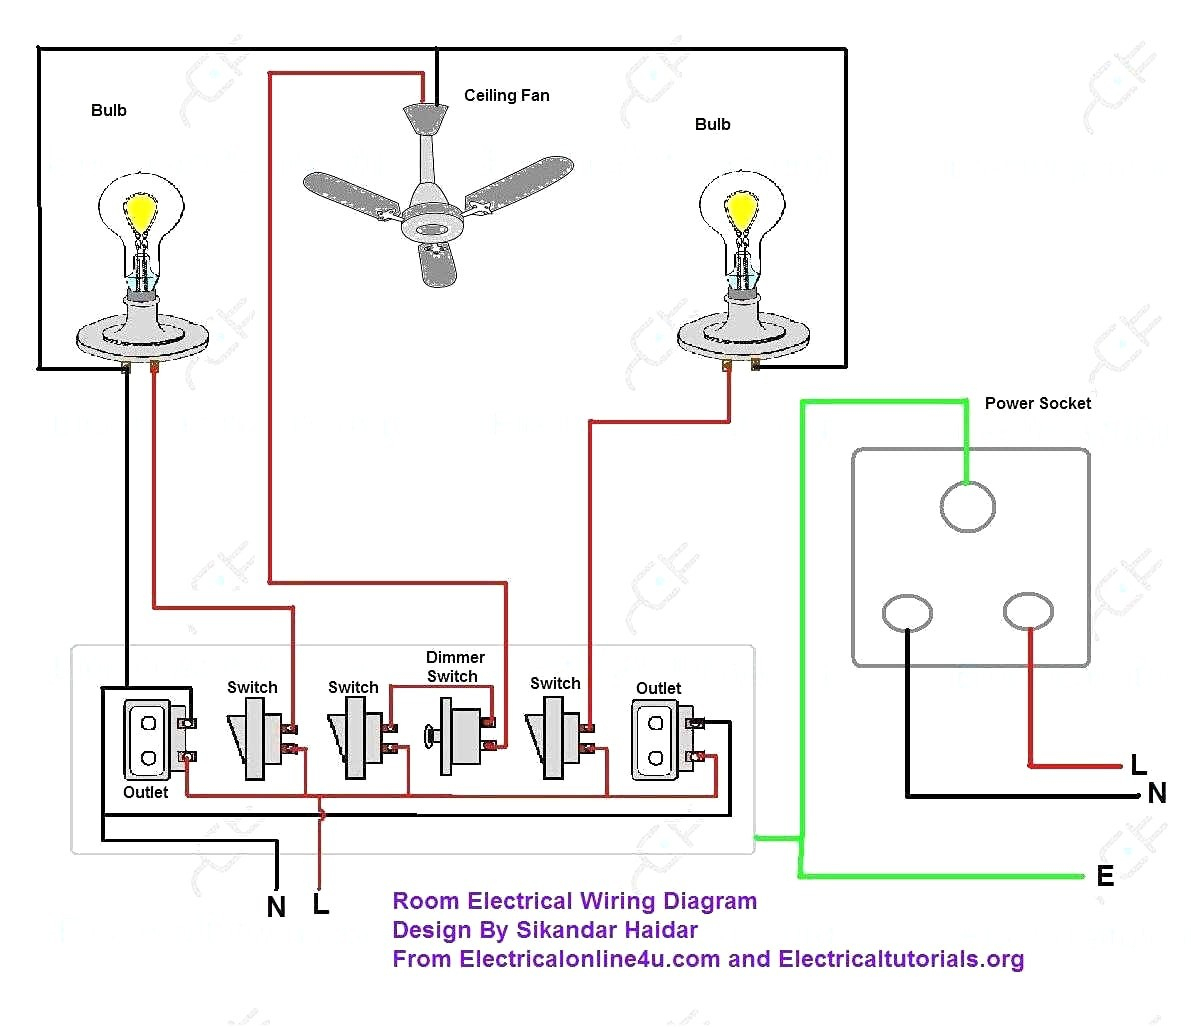 Home Wiring | Wiring Diagram - Electric Heater Wiring Diagram